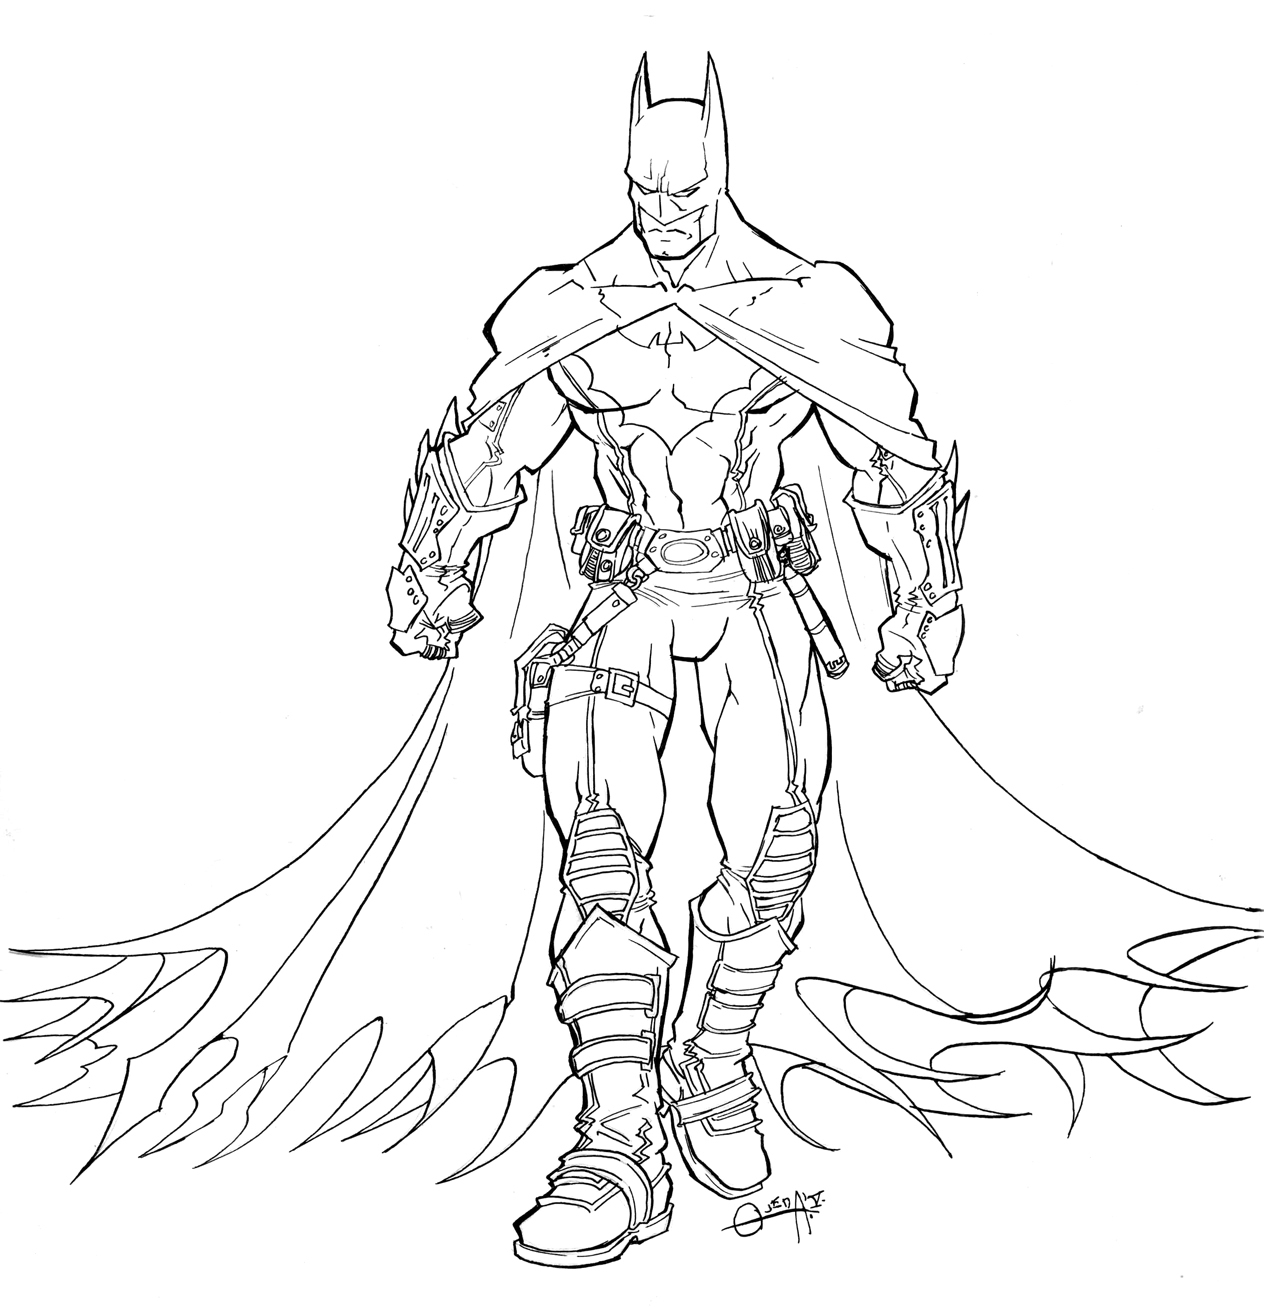 Batman Coloring Pages to Print 15b - To print for your project